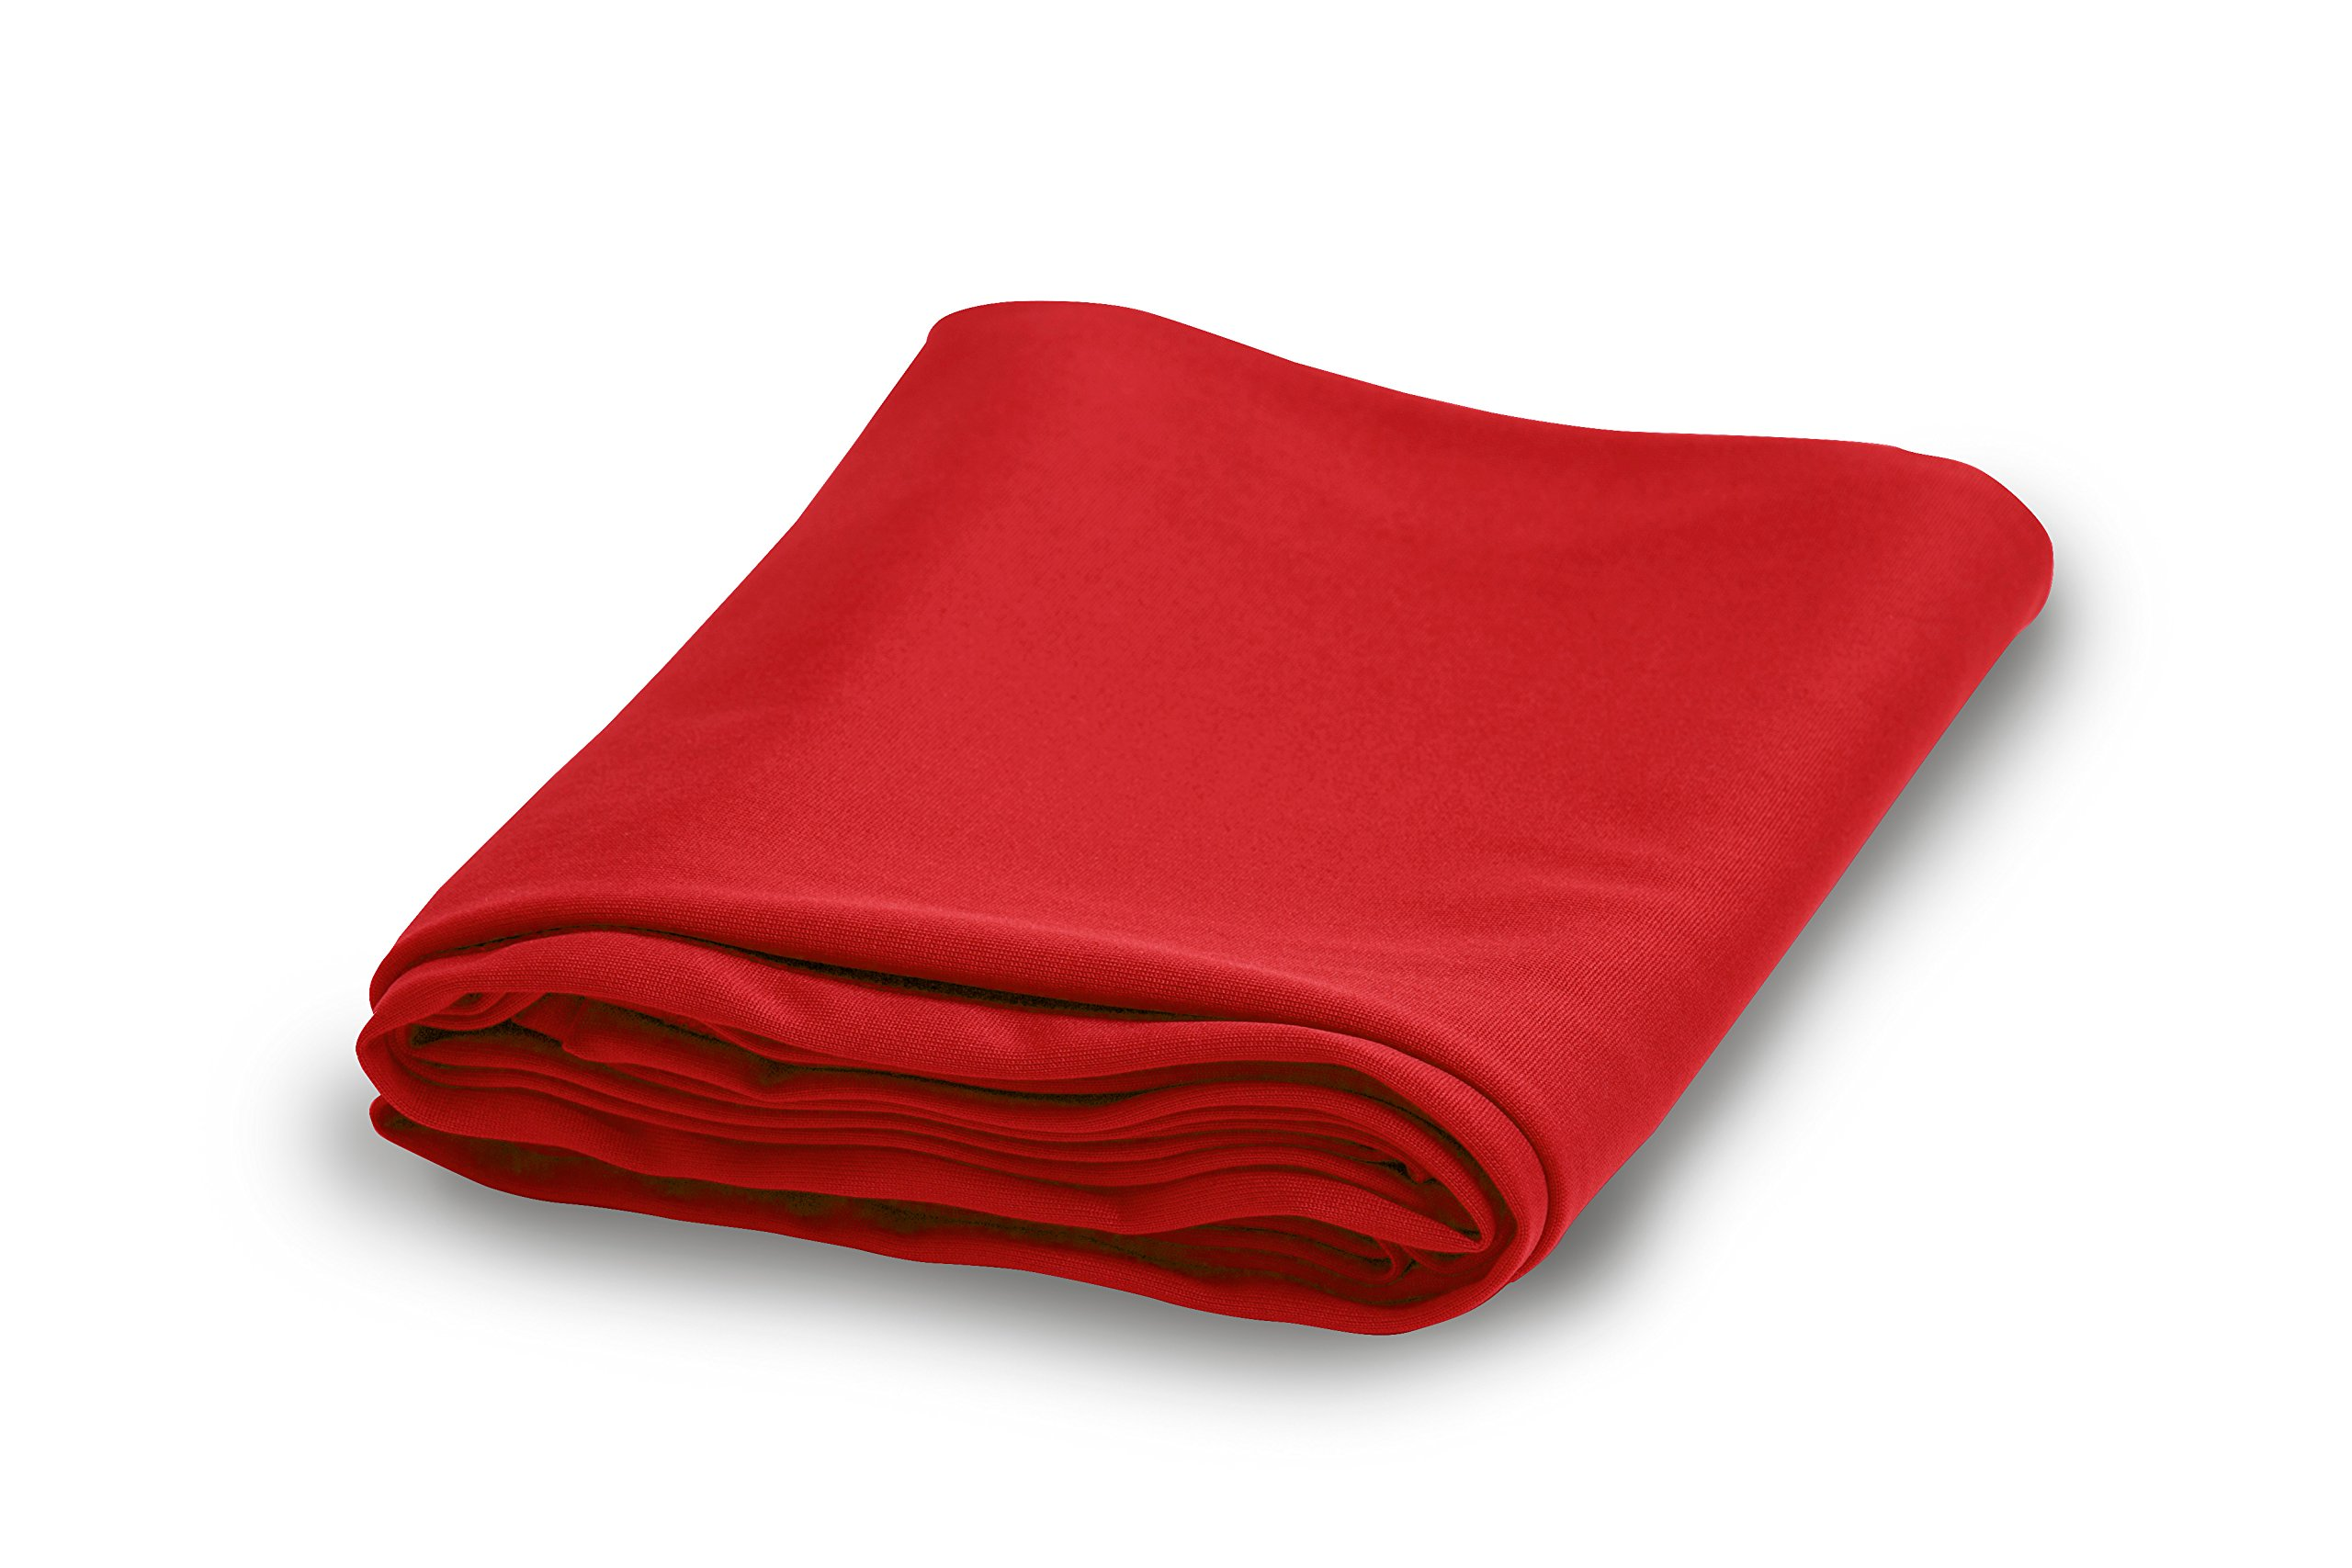 Discovery Trekking Outfitters Extreme Ultralight Travel and Sports Towel. High Tech Better Than Microfiber. Compact Quick Dry Lightweight Antibacterial Towels. 4 Colors, 3 Sizes. Top Gear Reviews. by Discovery Trekking Outfitters